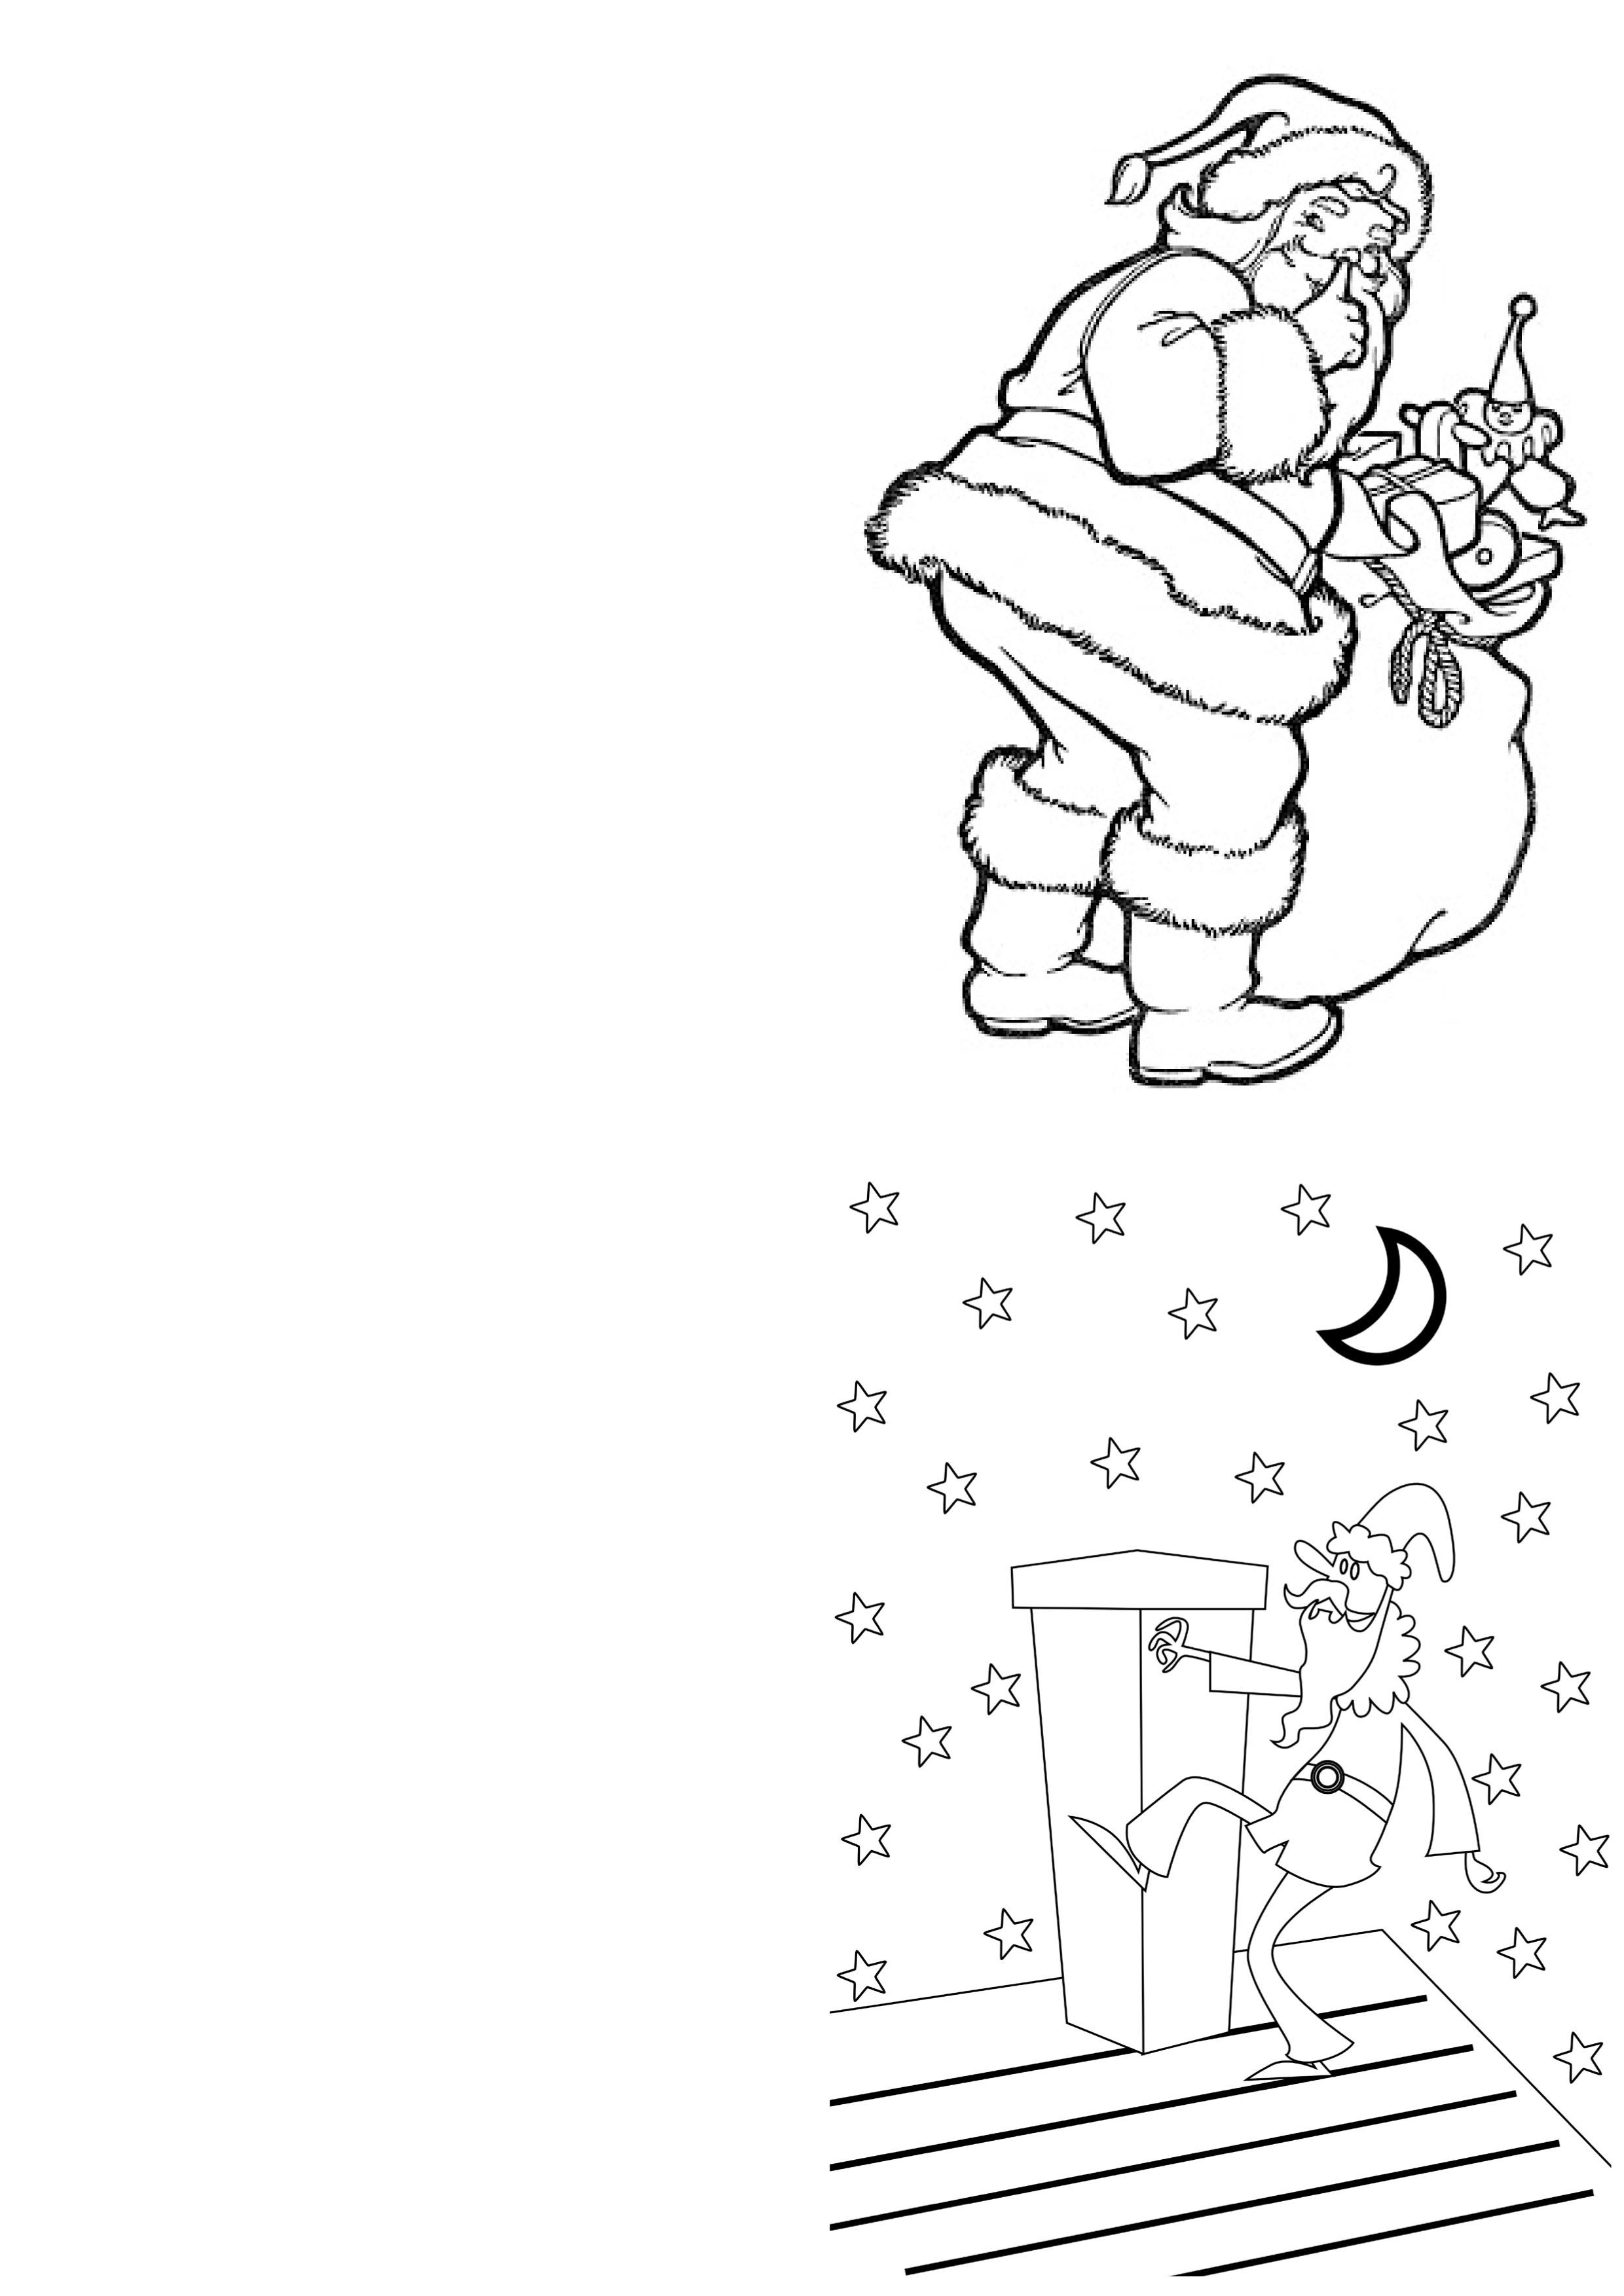 A Range Of Free Printable Christmas Cards Designs For Children To - Free Printable Christmas Cards To Color